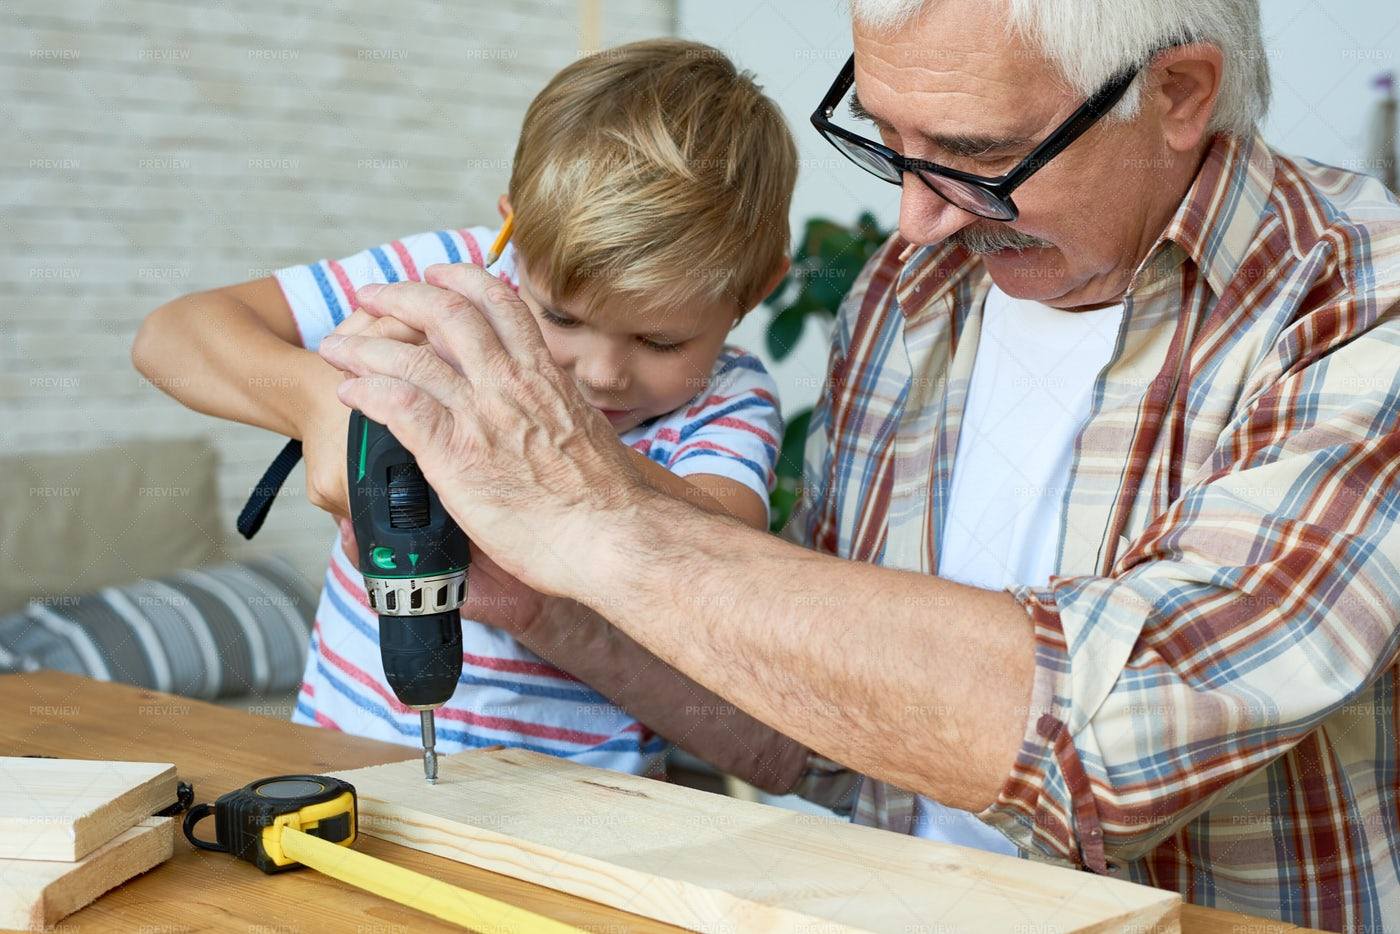 Cute Little Boy Drilling Wood With ...: Stock Photos